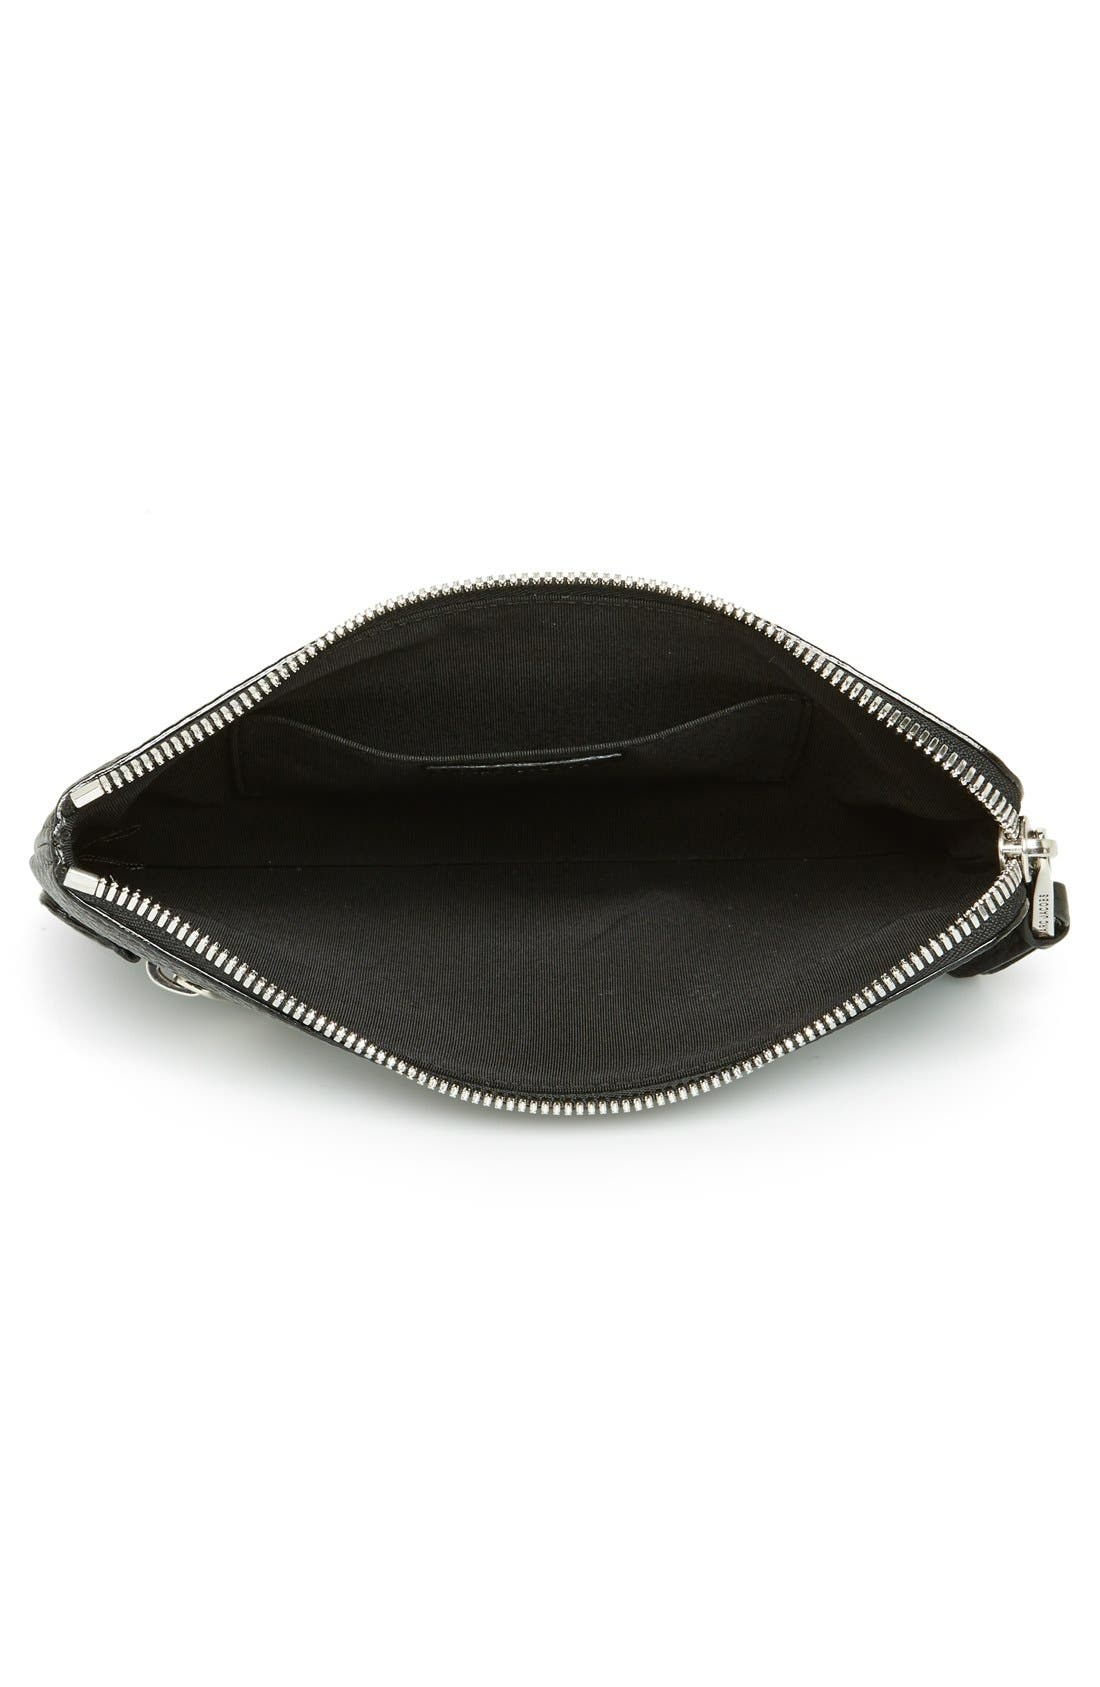 Alternate Image 3  - Marc Jacobs Leather Clutch